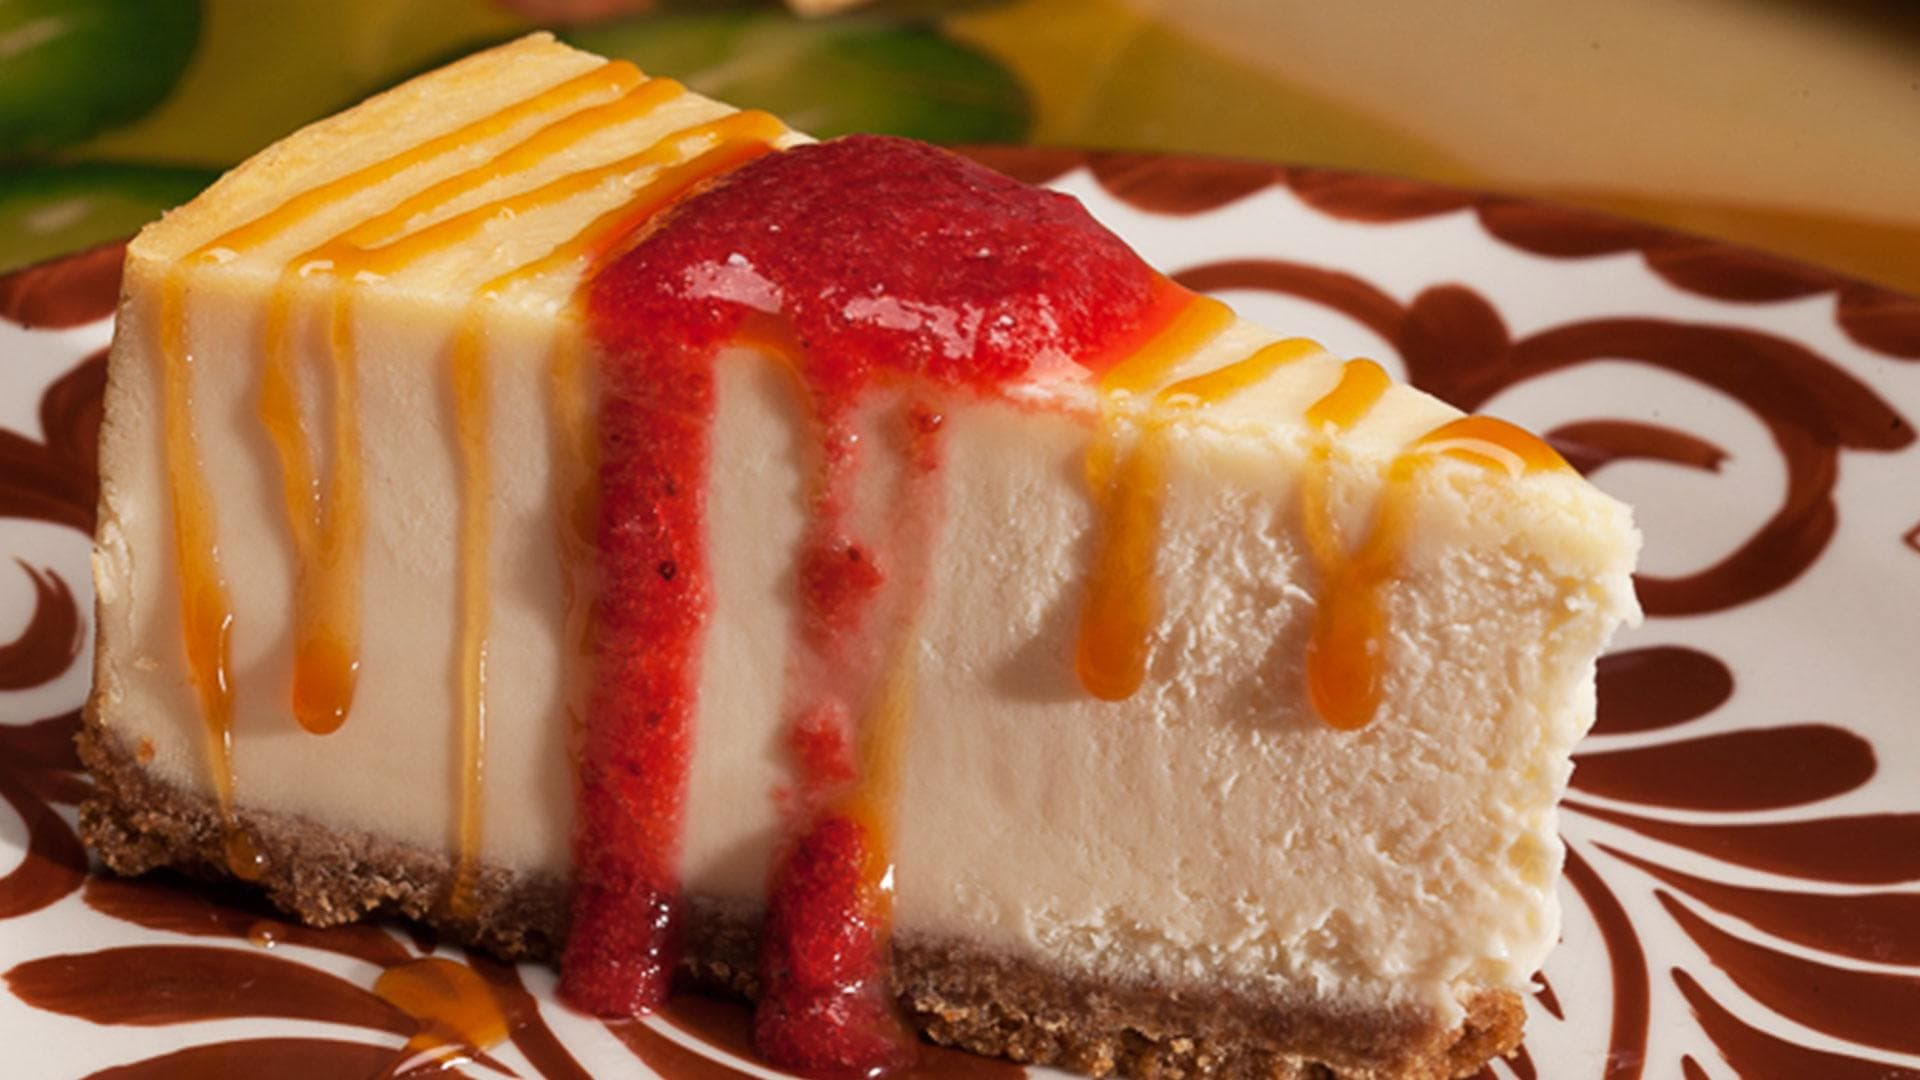 Cheesecake from La Mesa Mexican Restaurant